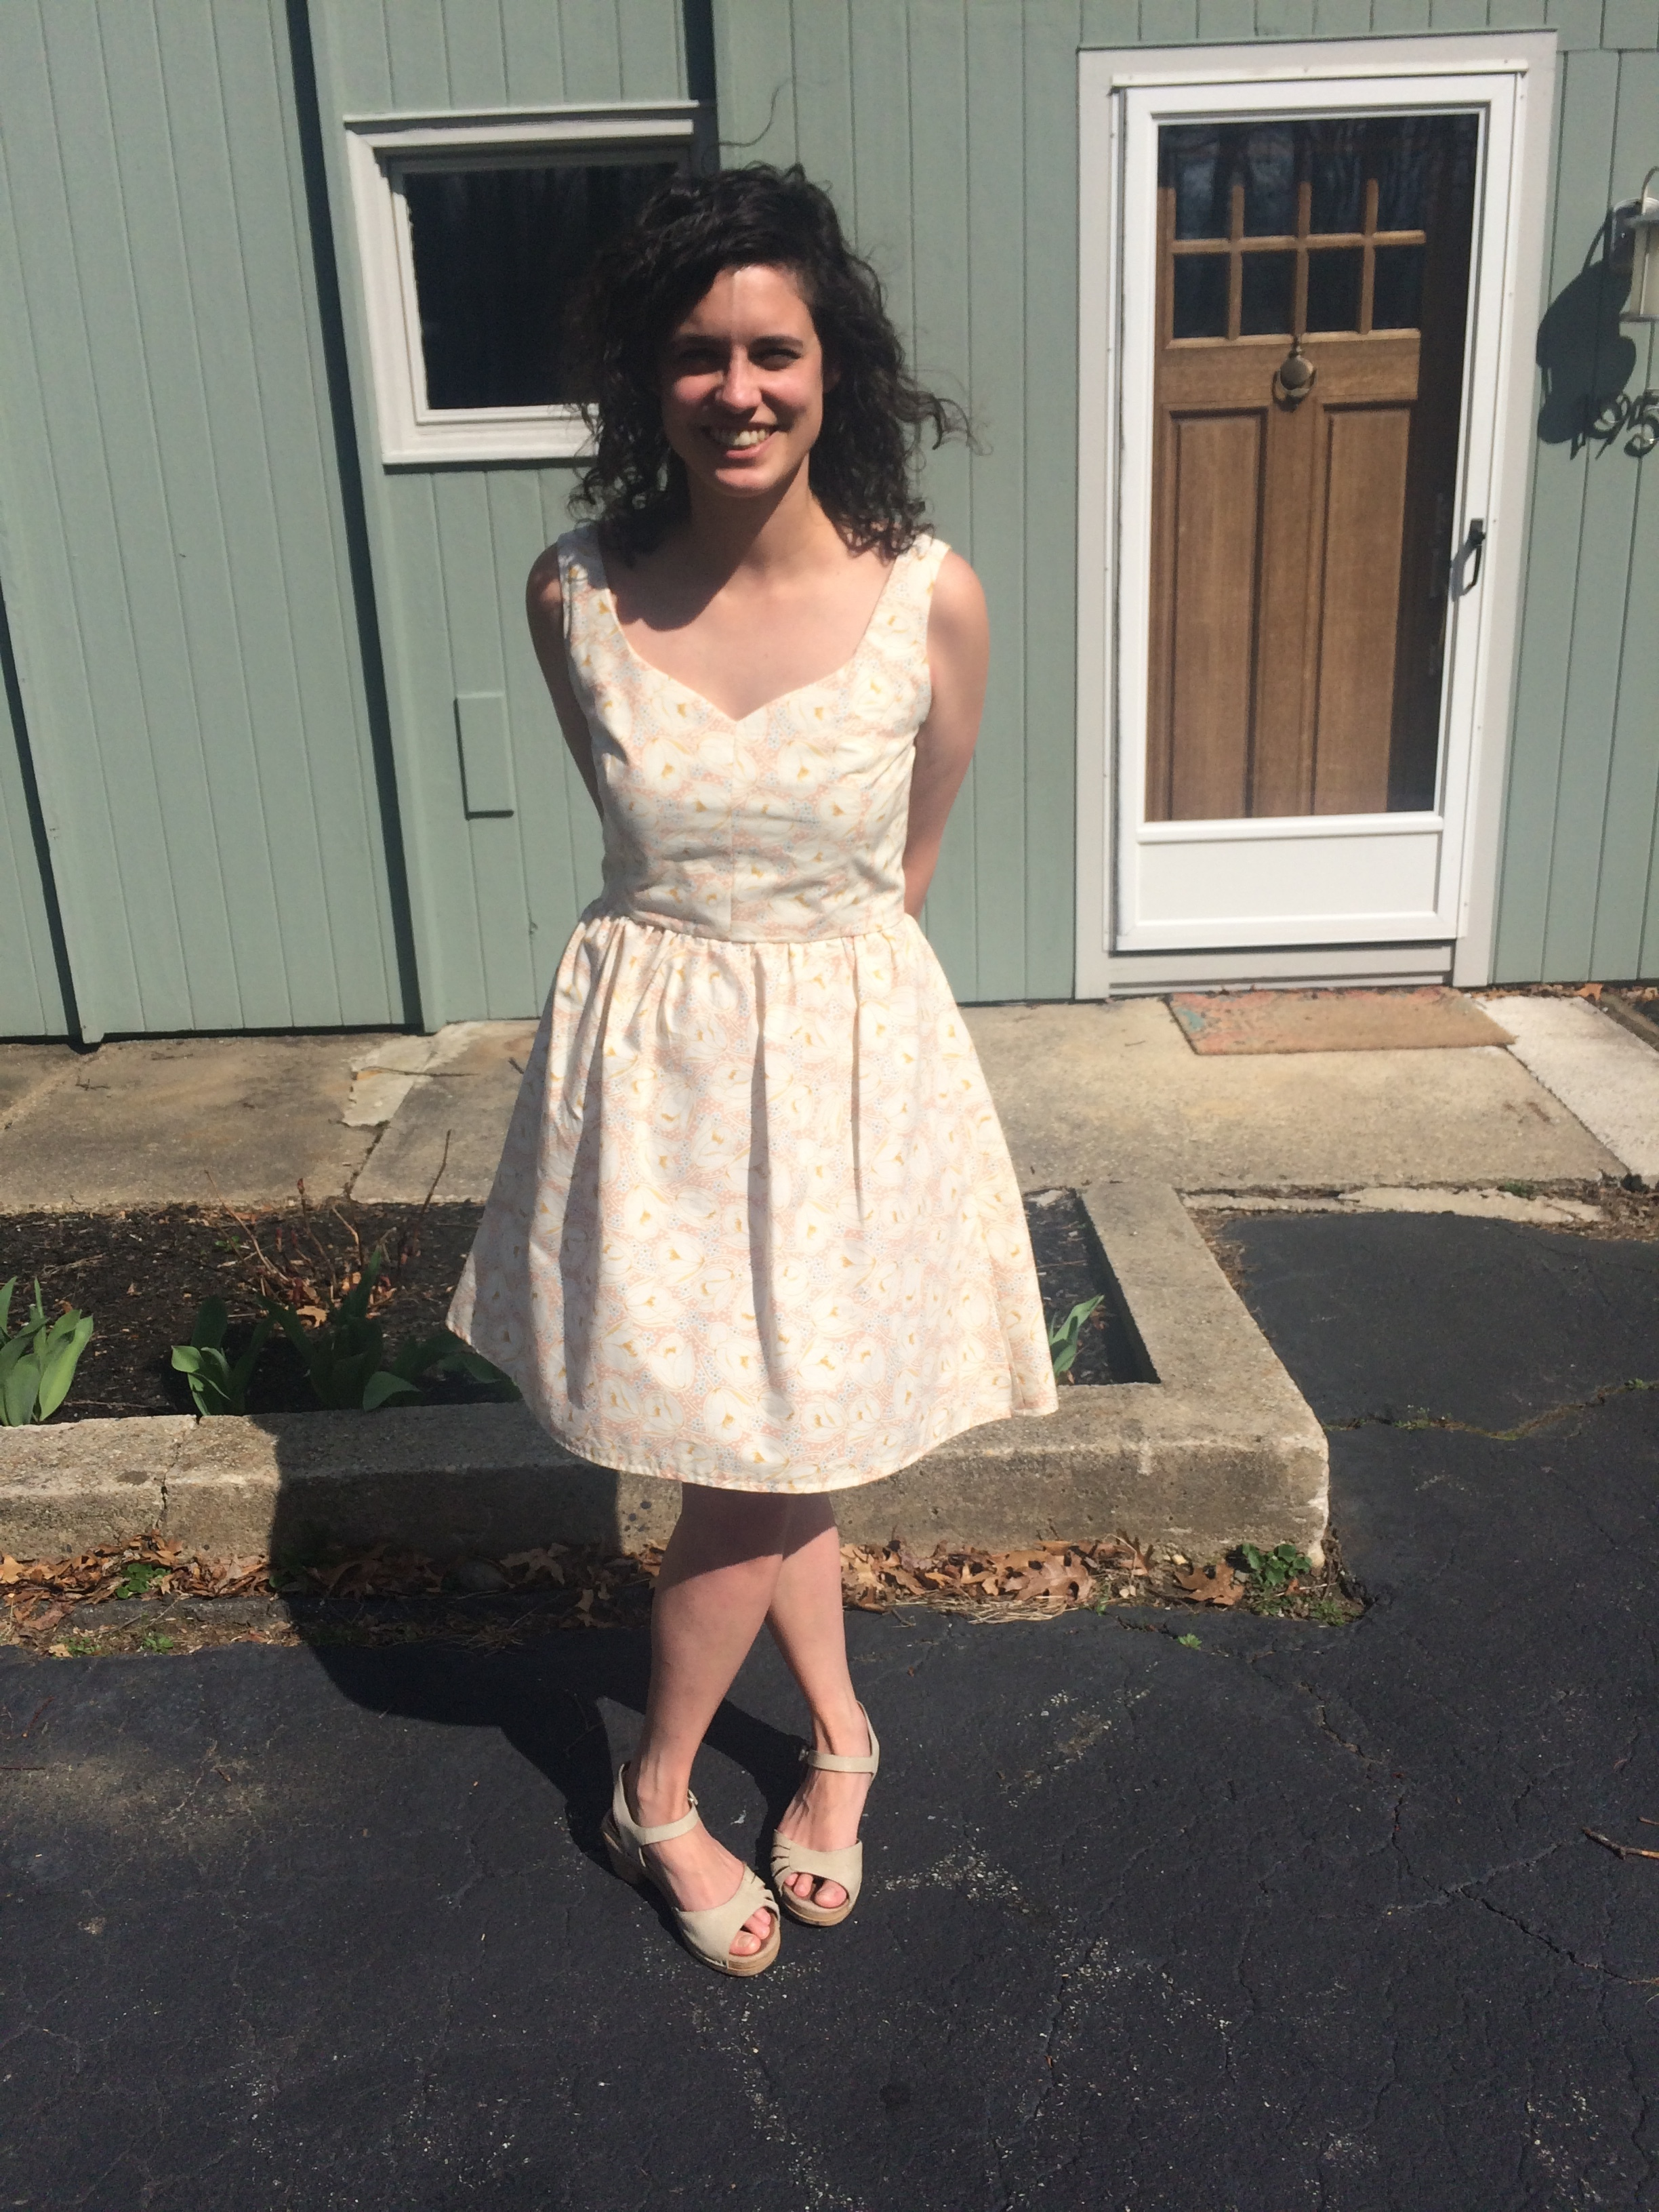 Easter Sunday - the one time I wore this dress